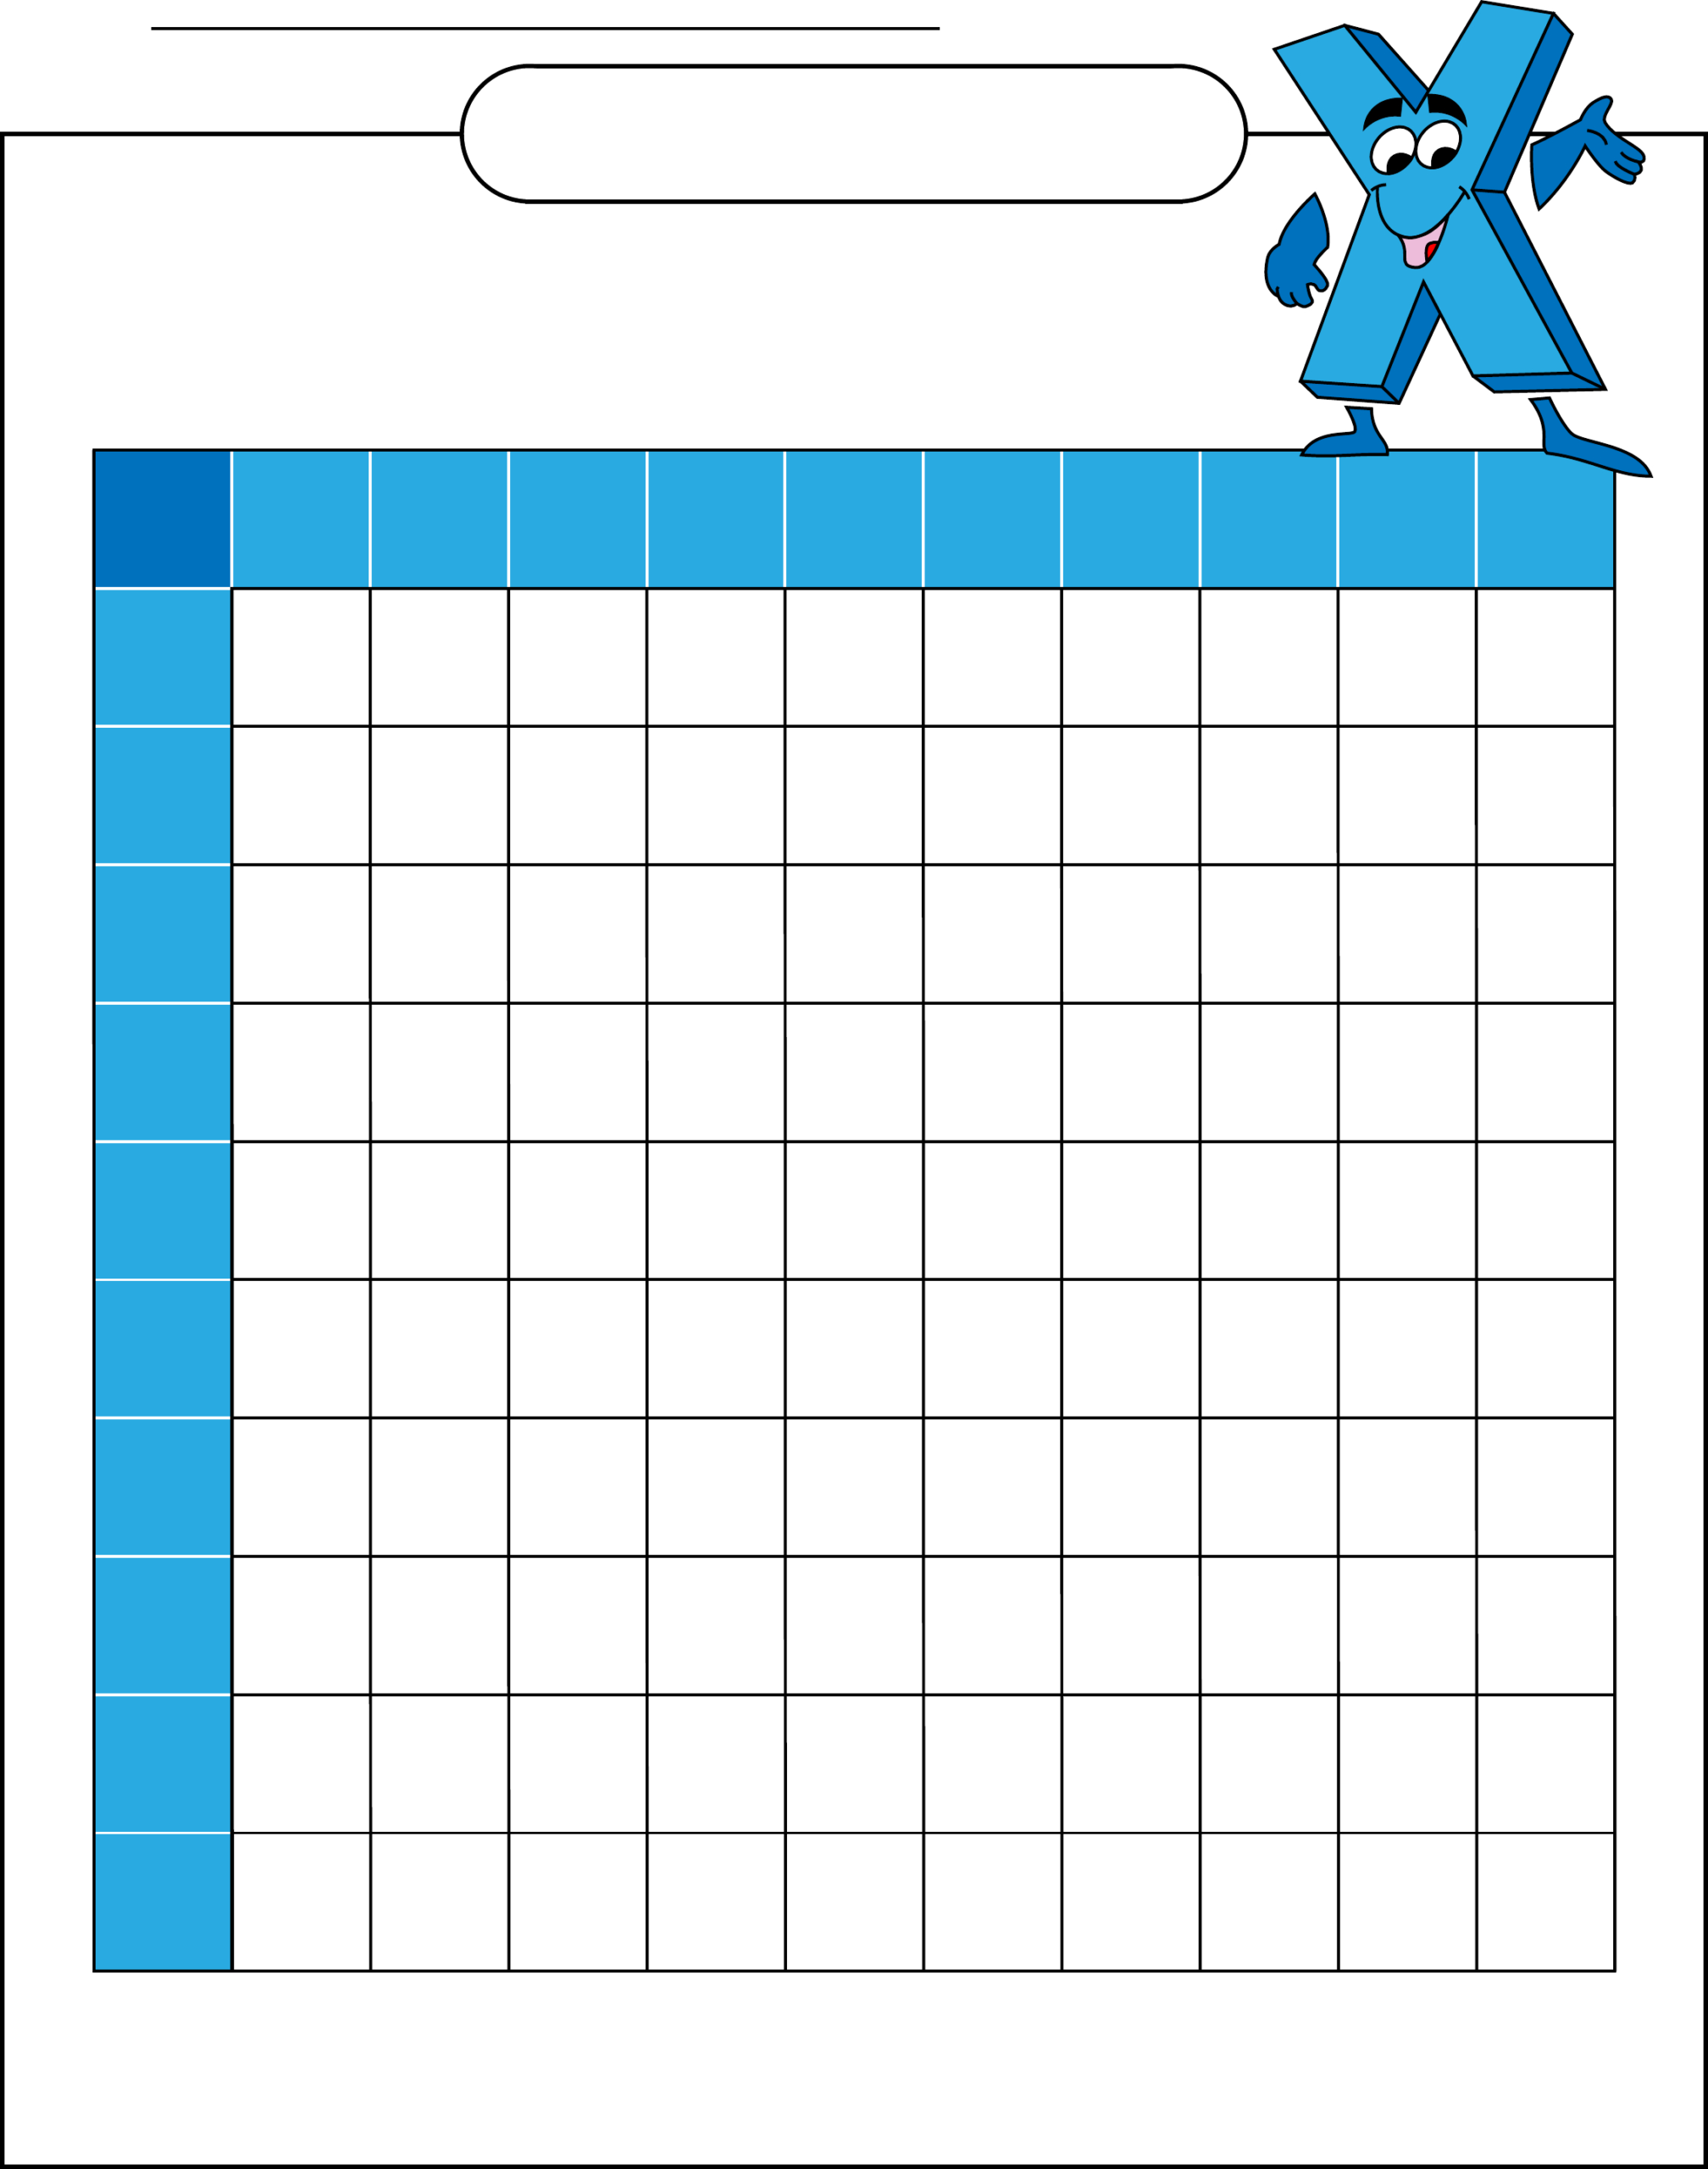 Blank Multiplication Table Free Download with regard to Printable Empty Multiplication Table